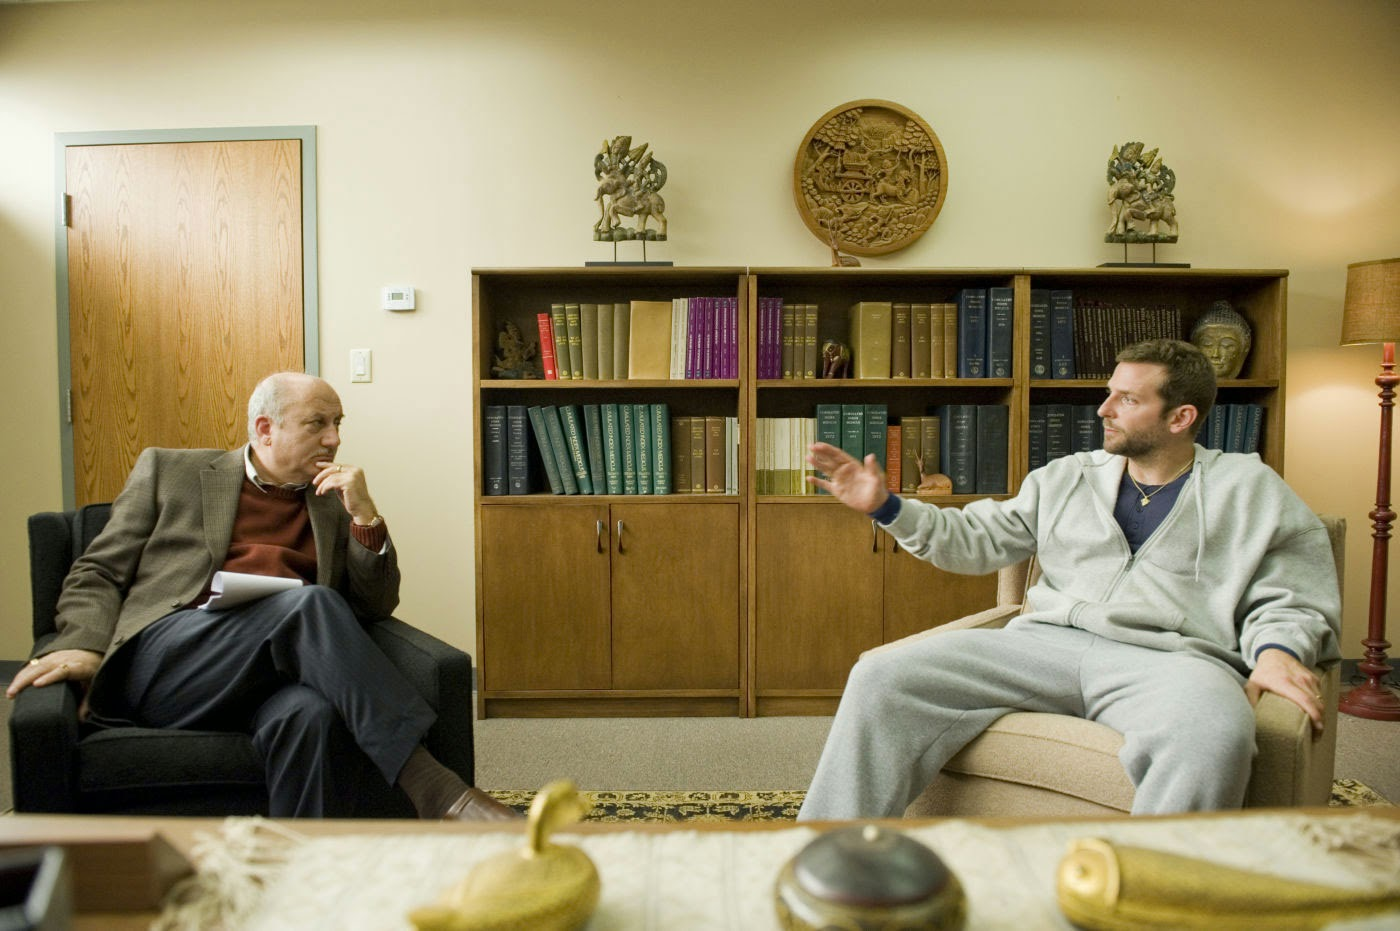 The Movie Psychoanalyst: Silver Linings Playbook Film Review